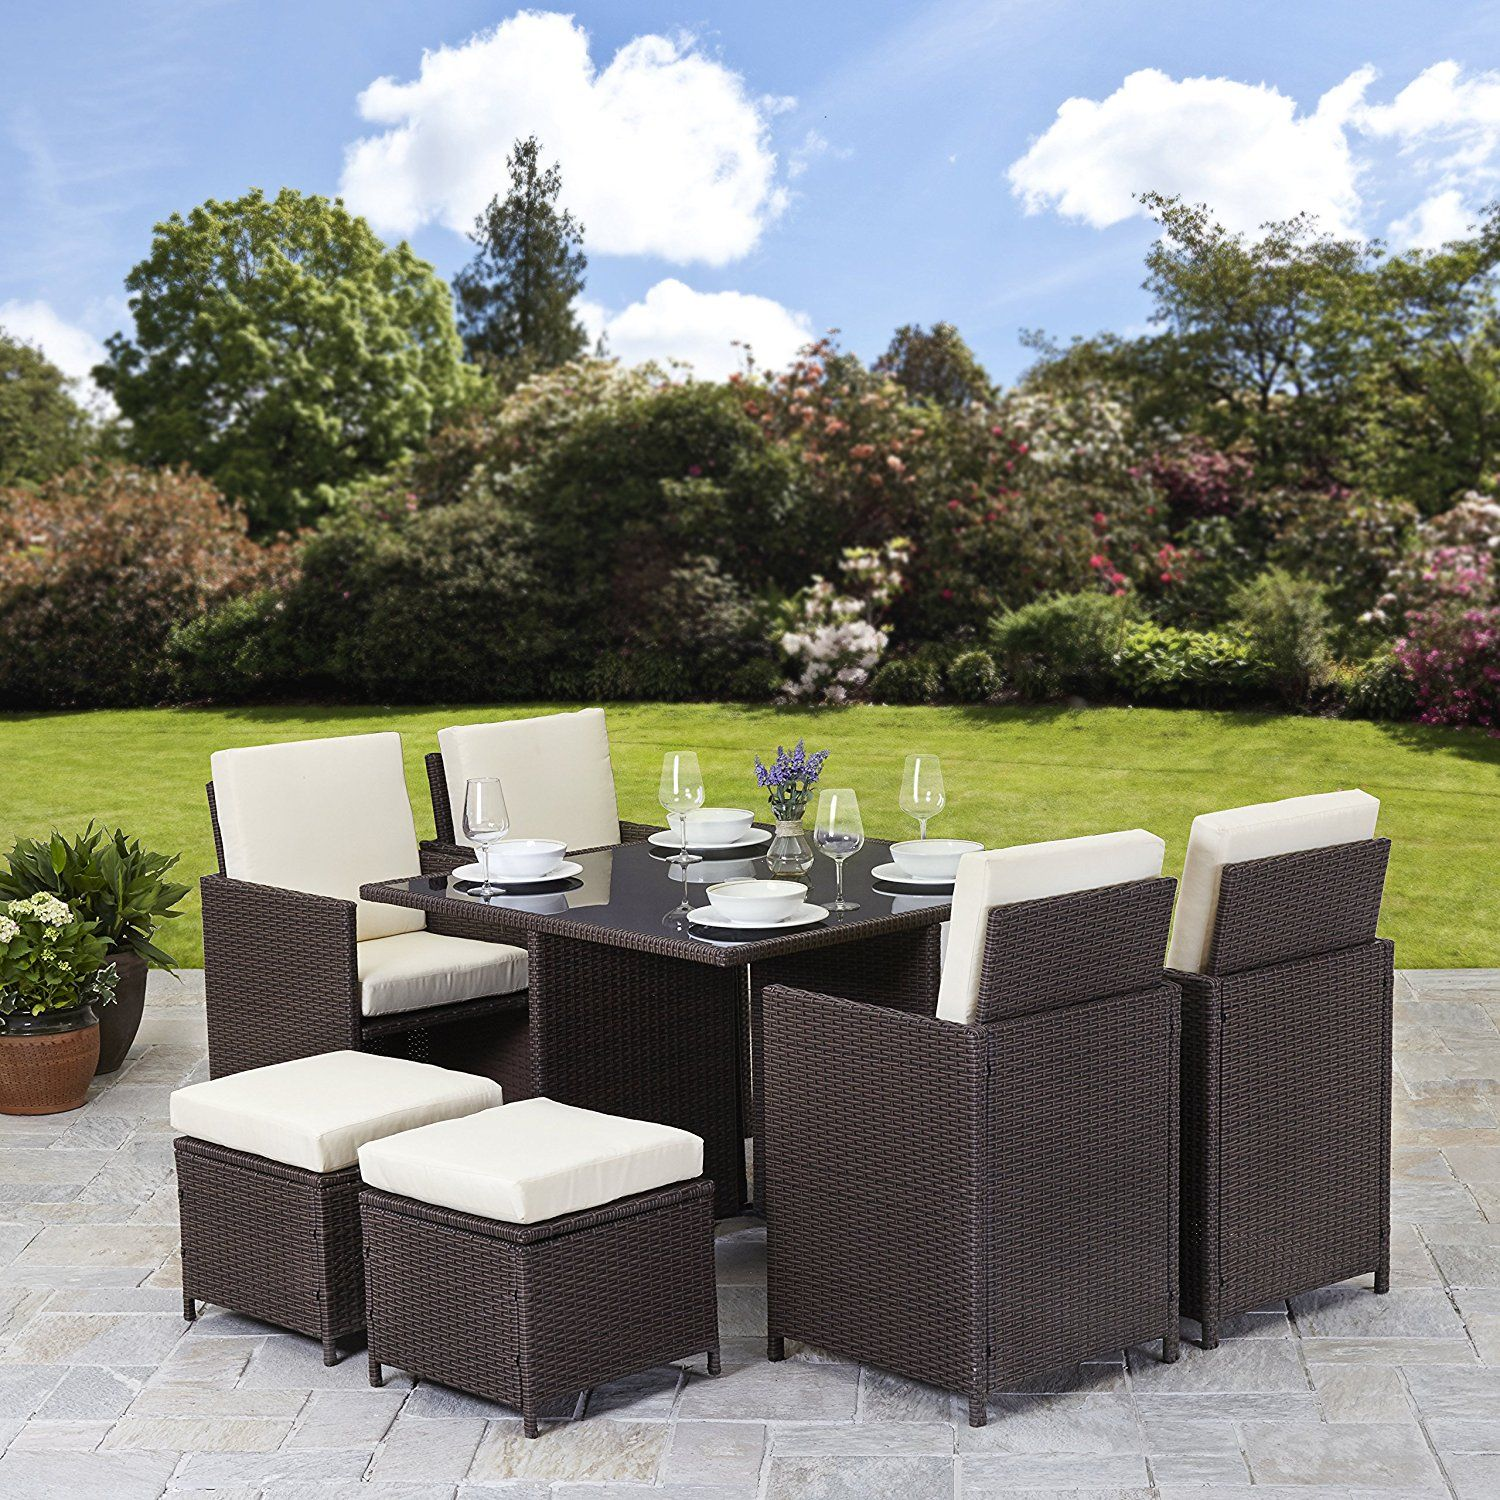 Rattan cube garden furniture set 8 seater outdoor wicker 9pcs brown amazon co uk garden outdoors